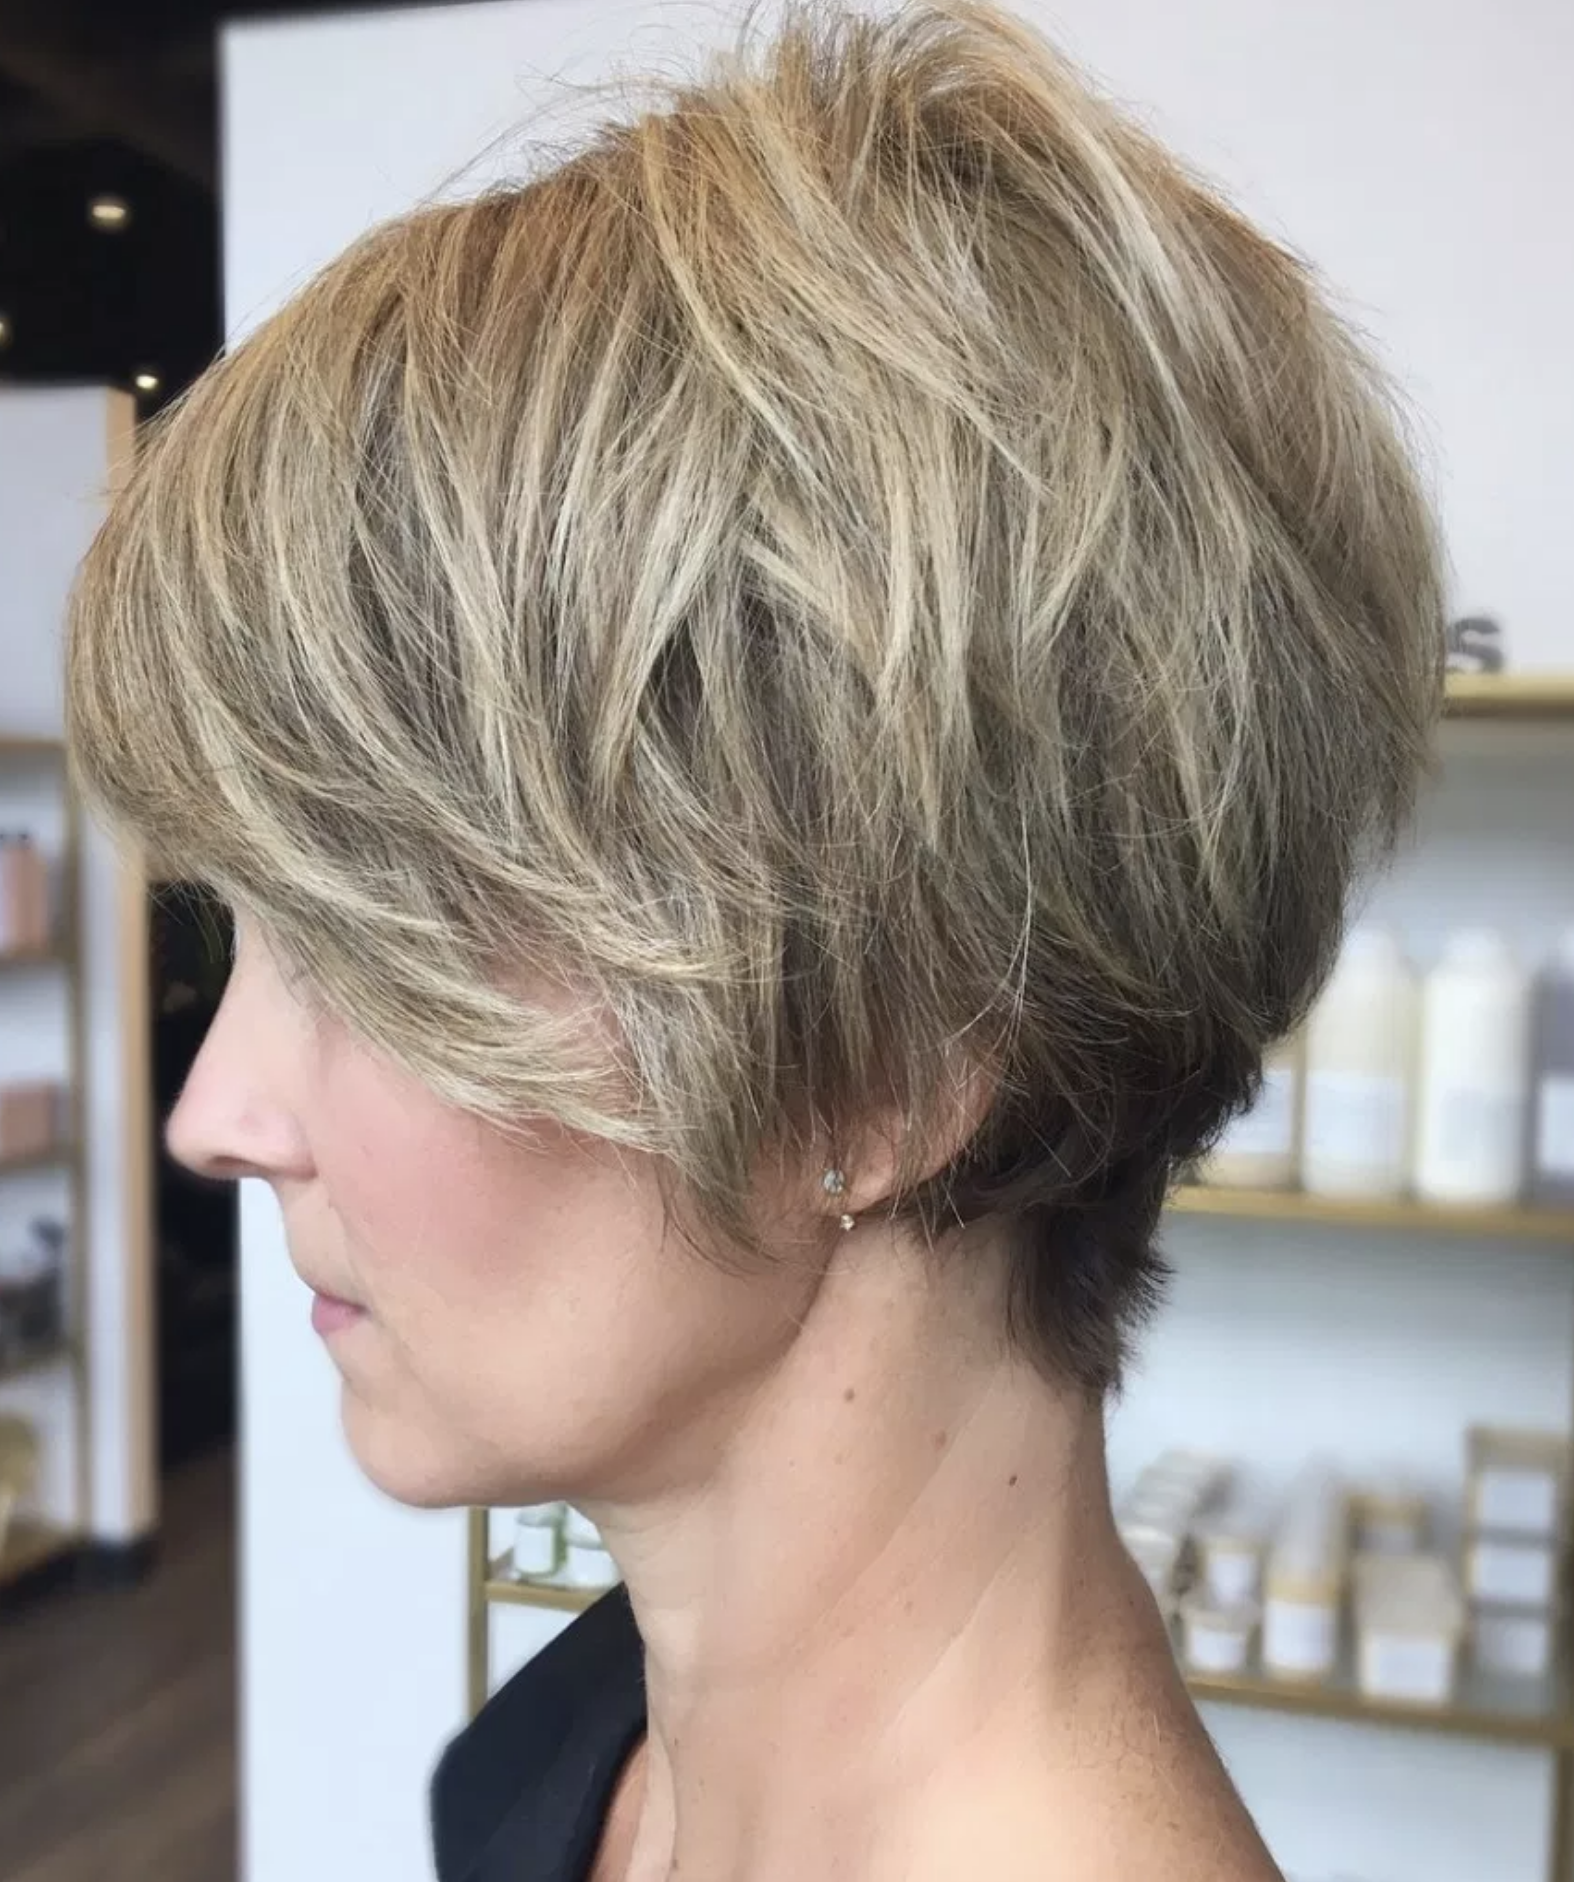 Short Hairstyles For Women Over 40 Many Women In Their 40s Opt For Short Haircuts On A Hunch And T Short Hair Styles Easy Womens Hairstyles Short Hair Styles